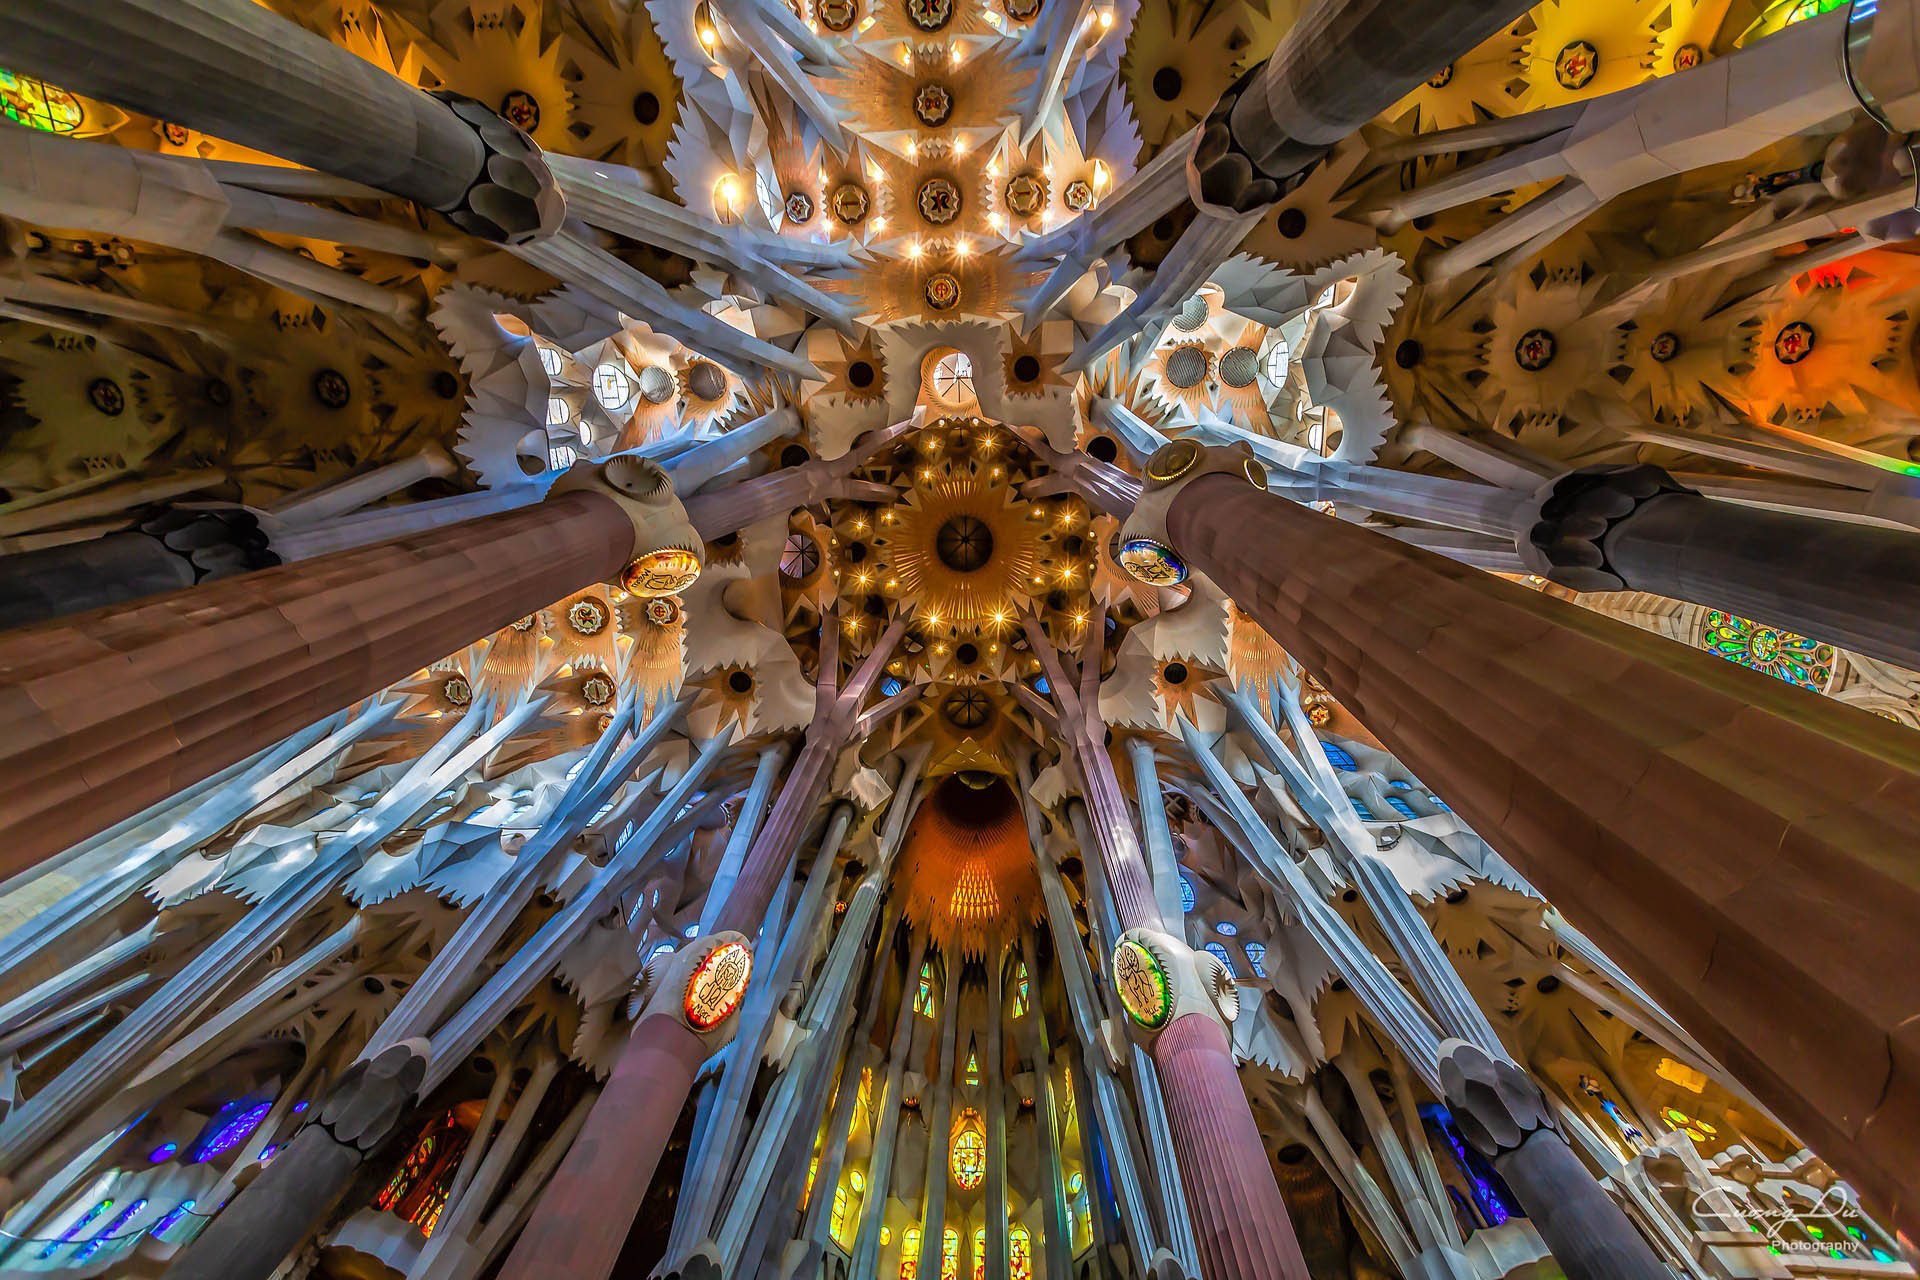 Inside the famous Sagrada Familia cathedral in Barcelona looking up at the carved ceiling & the glorious colored stained-glass windows.